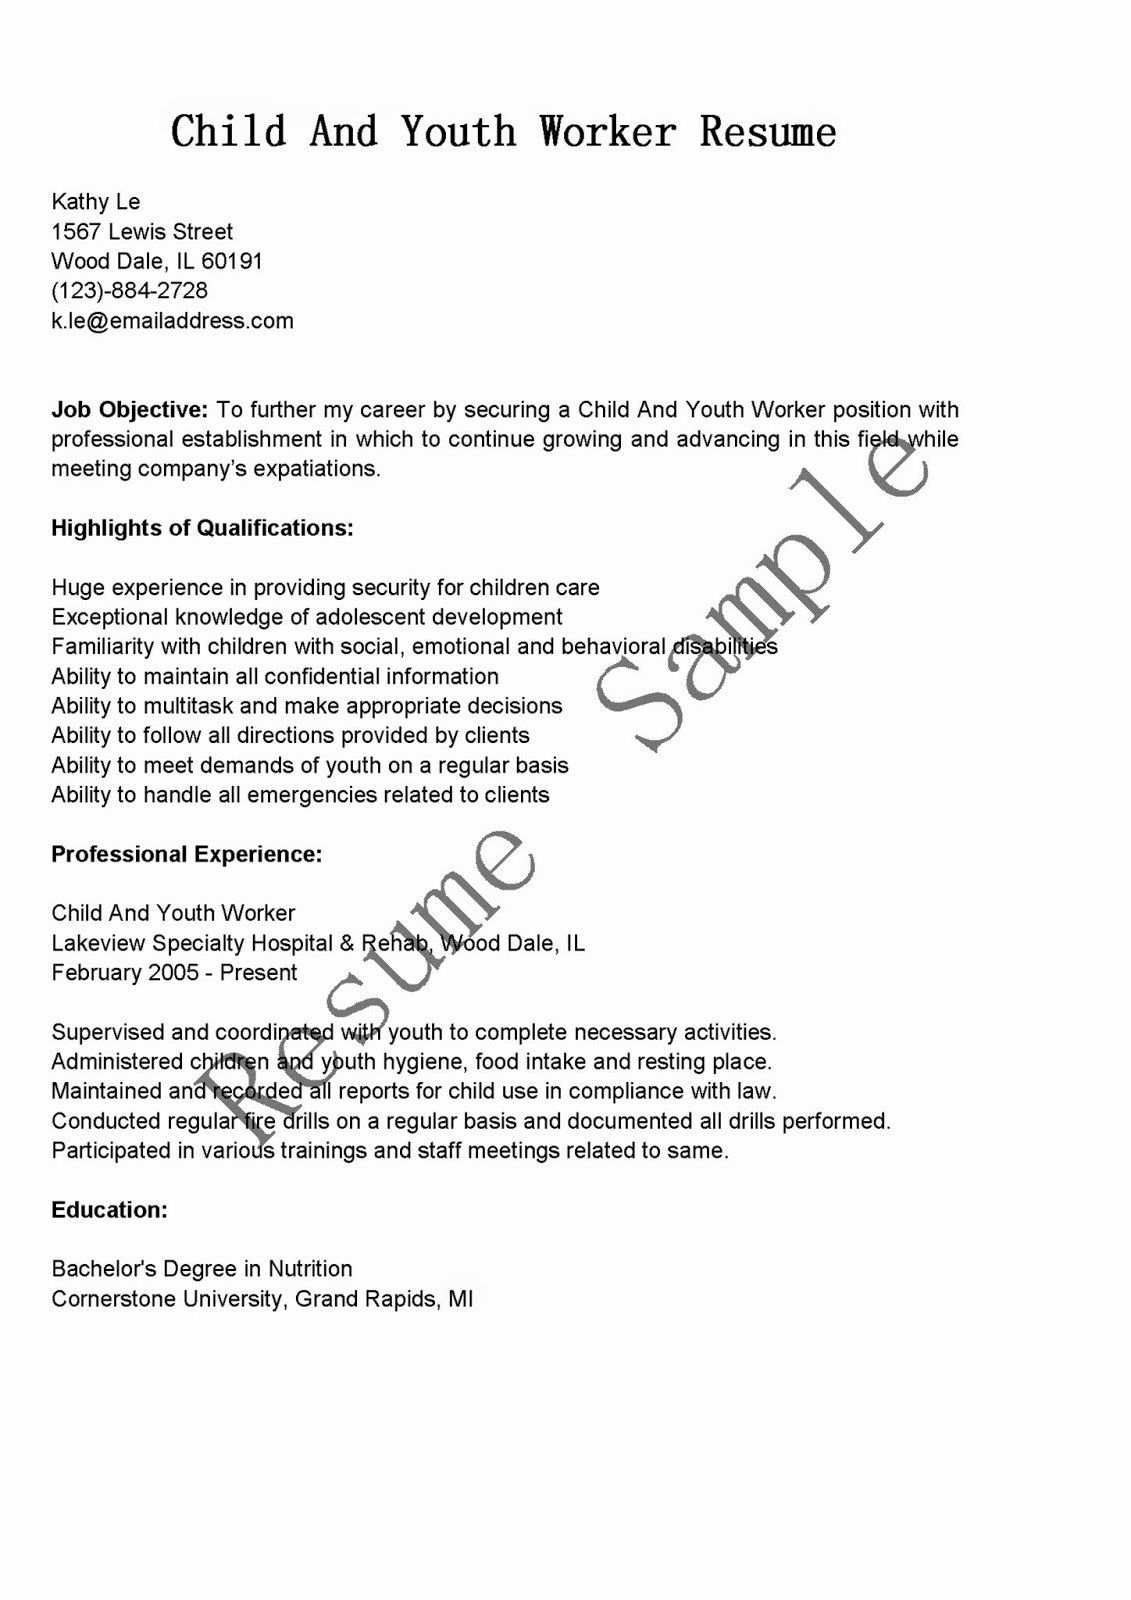 20 Child Care Worker Resume in 2020 Child care worker